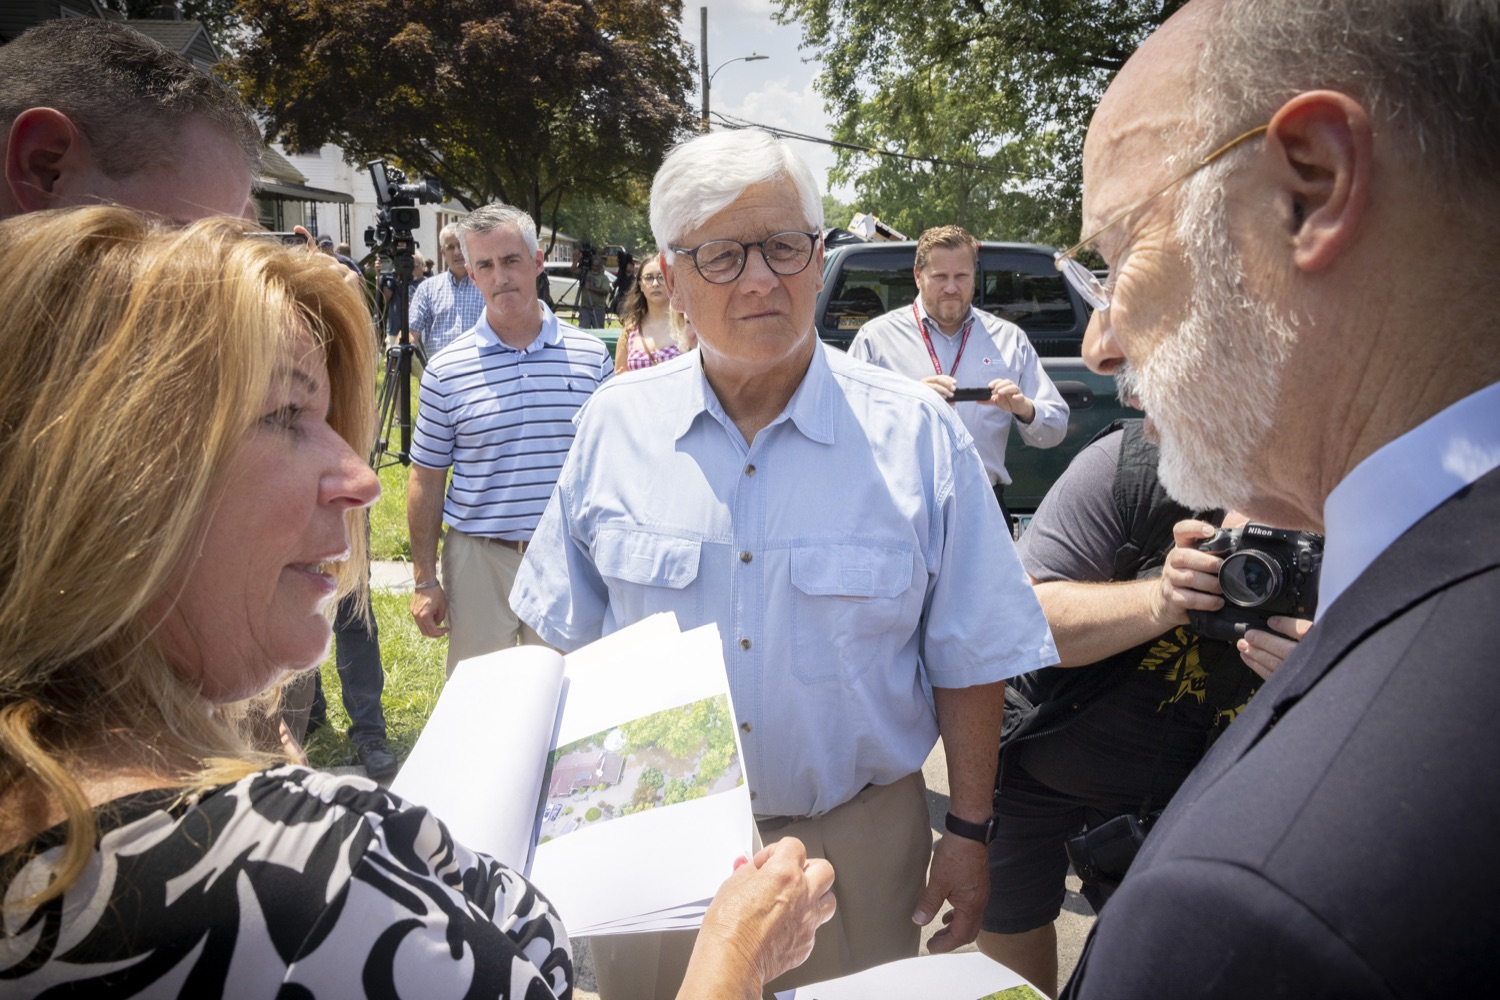 """<a href=""""https://filesource.wostreaming.net/commonwealthofpa/photo/18934_gov_stormdamage_dz_004.jpg"""" target=""""_blank"""">⇣Download Photo<br></a>Pennsylvania Governor Tom Wolf speaking with flood victims and public officials.    Governor Tom Wolf visited Bristol and Andalusia in Bucks County to tour communities affected by severe weather and flash flooding. The governor was joined by local officials and legislators to visit damaged homes and speak to residents. JULY 16, 2021 - ANDALUSIA, PA"""